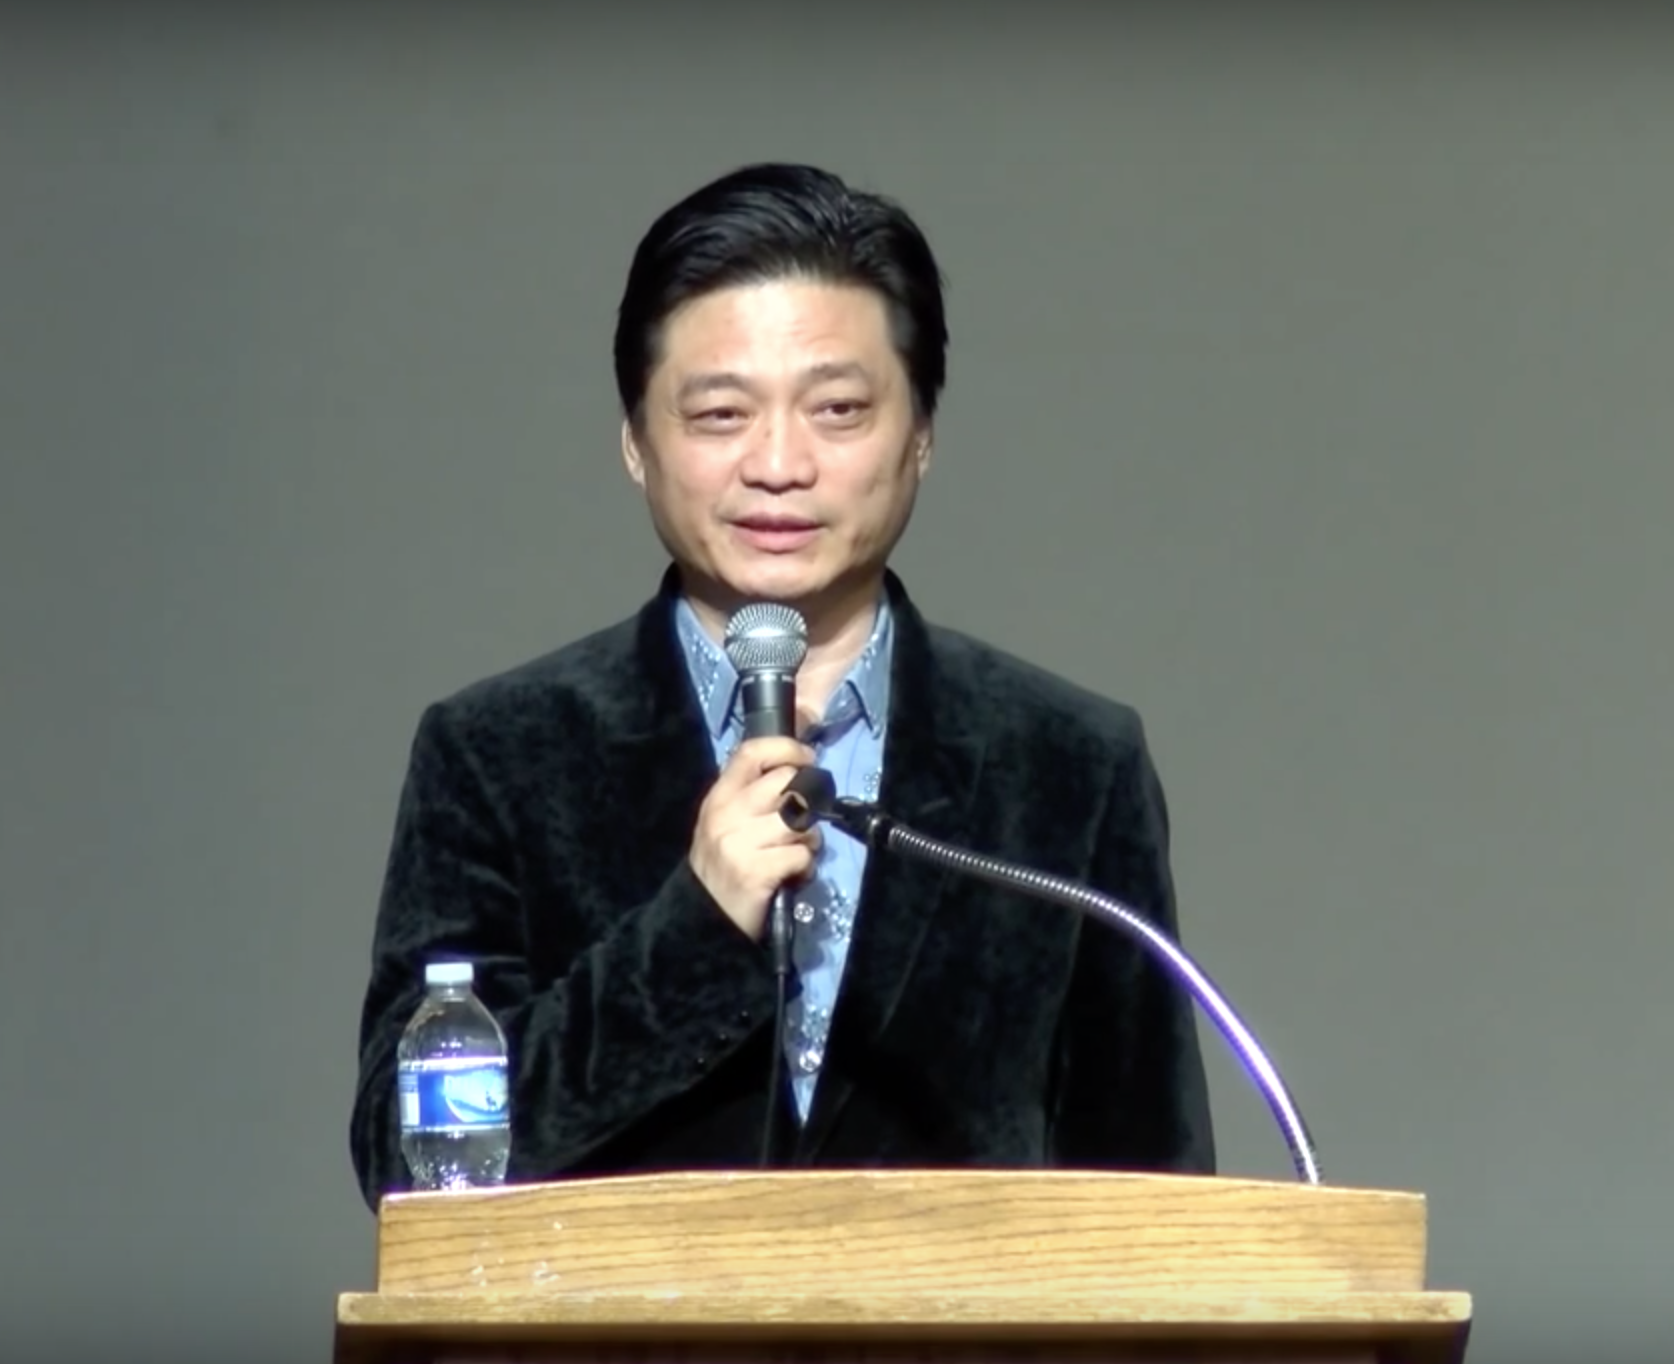 In May, a very famous Beijing TV host, Cui Yongyuan, exposed the dual-contract saga, an open secret that everyone knew existed. (Image: YouTube/Screenshot)